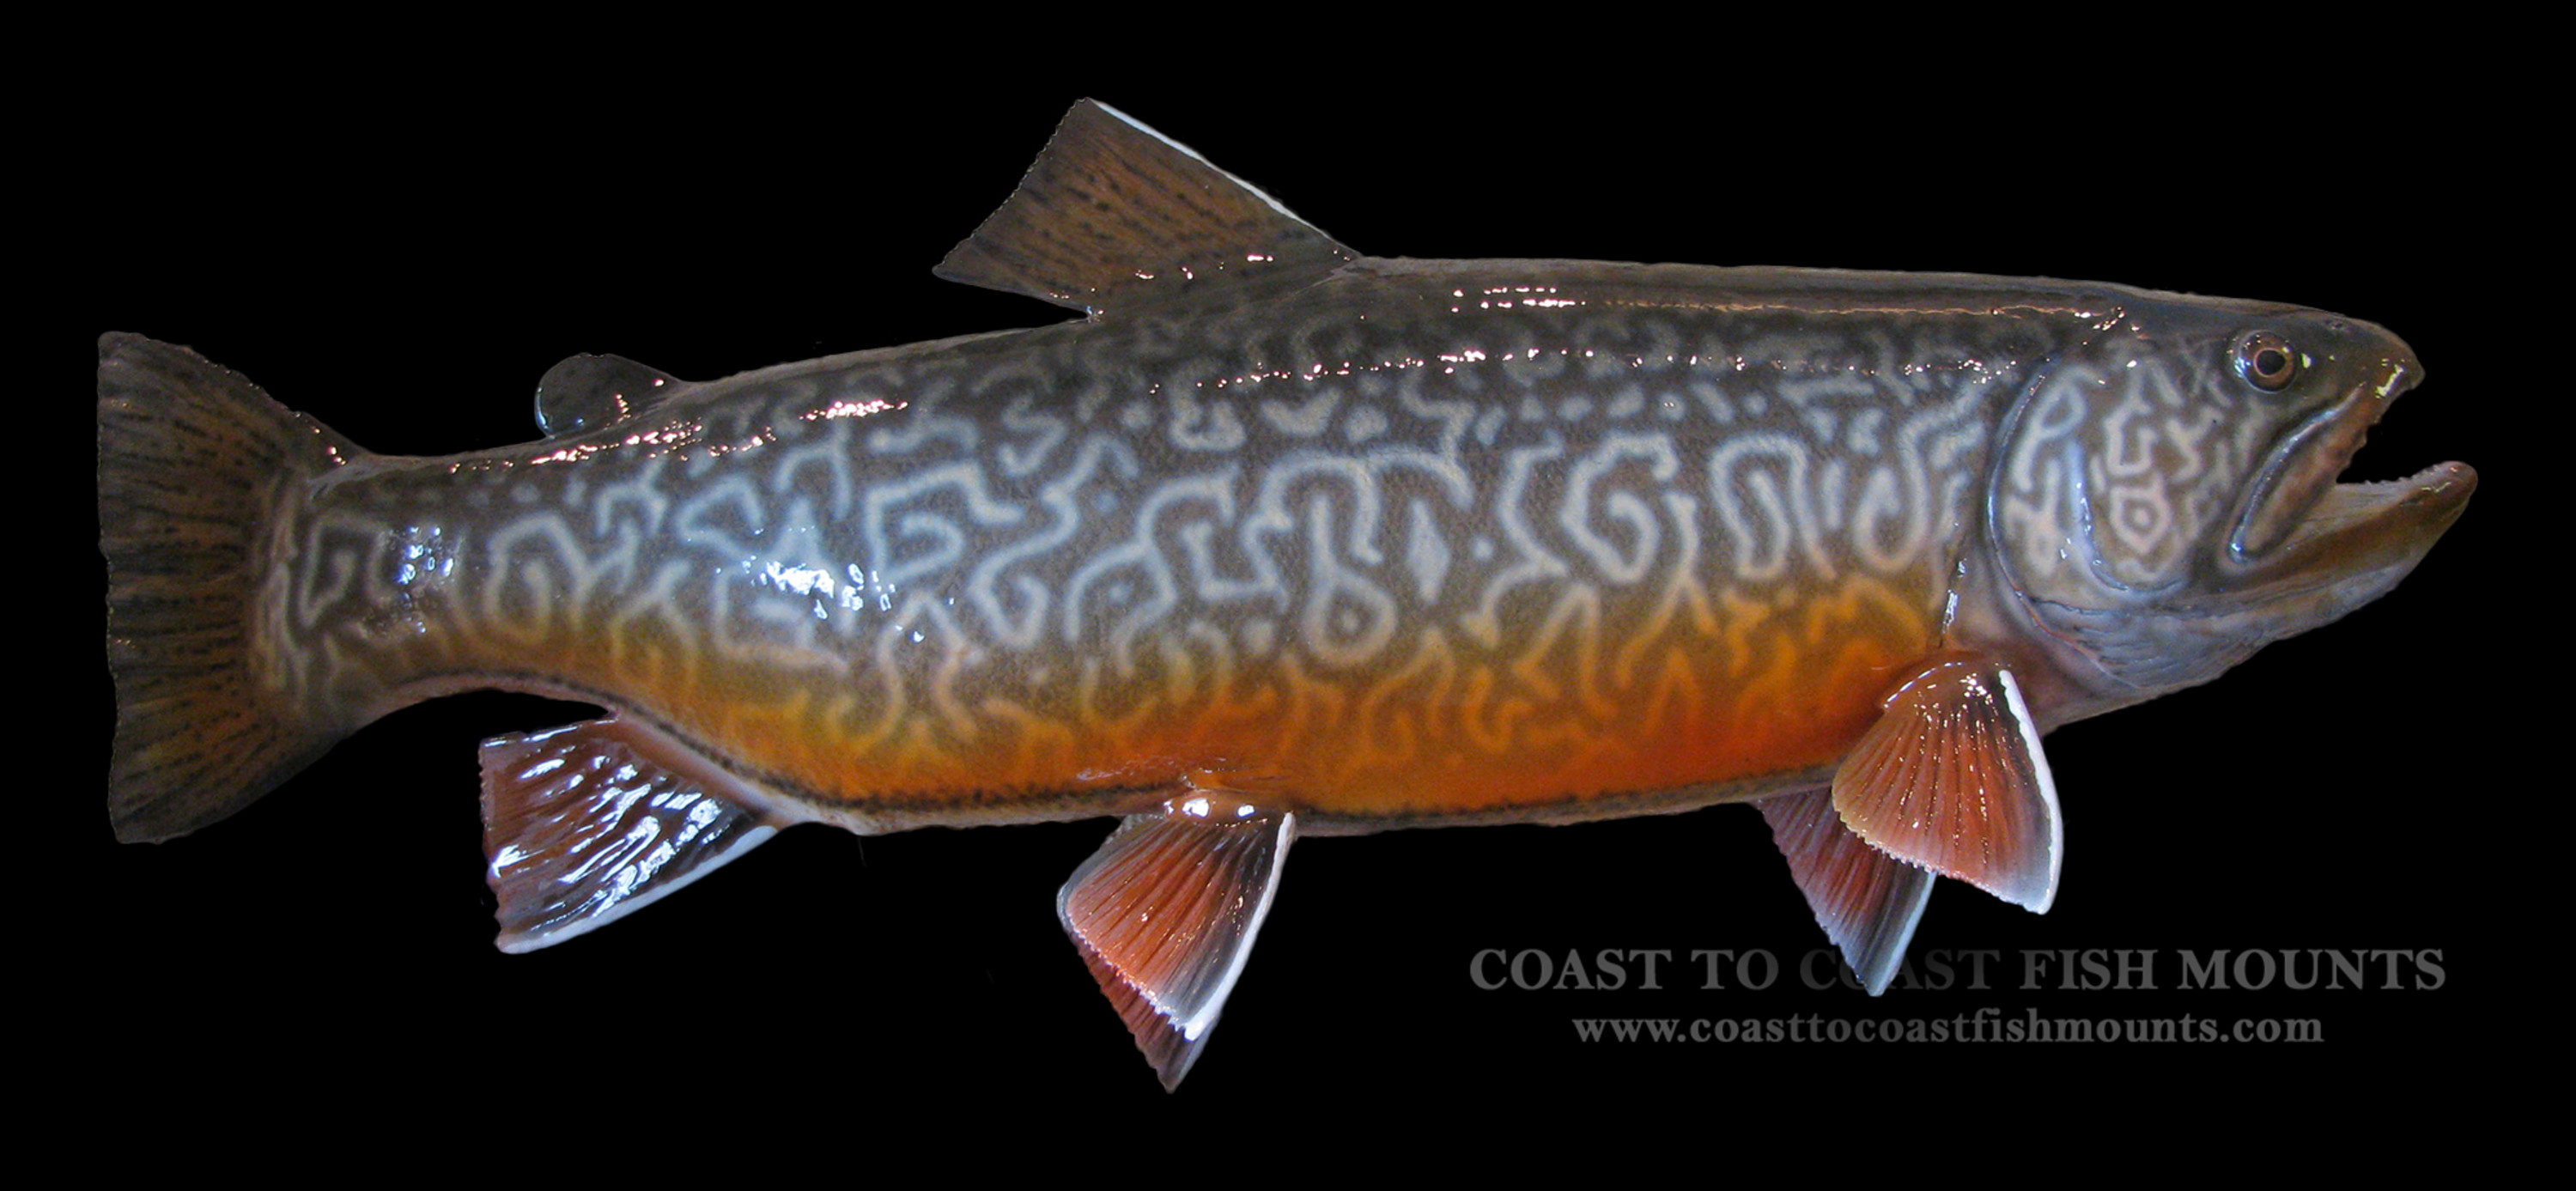 Tiger trout fish mount and fish replicas coast to coast for How to mount a fish